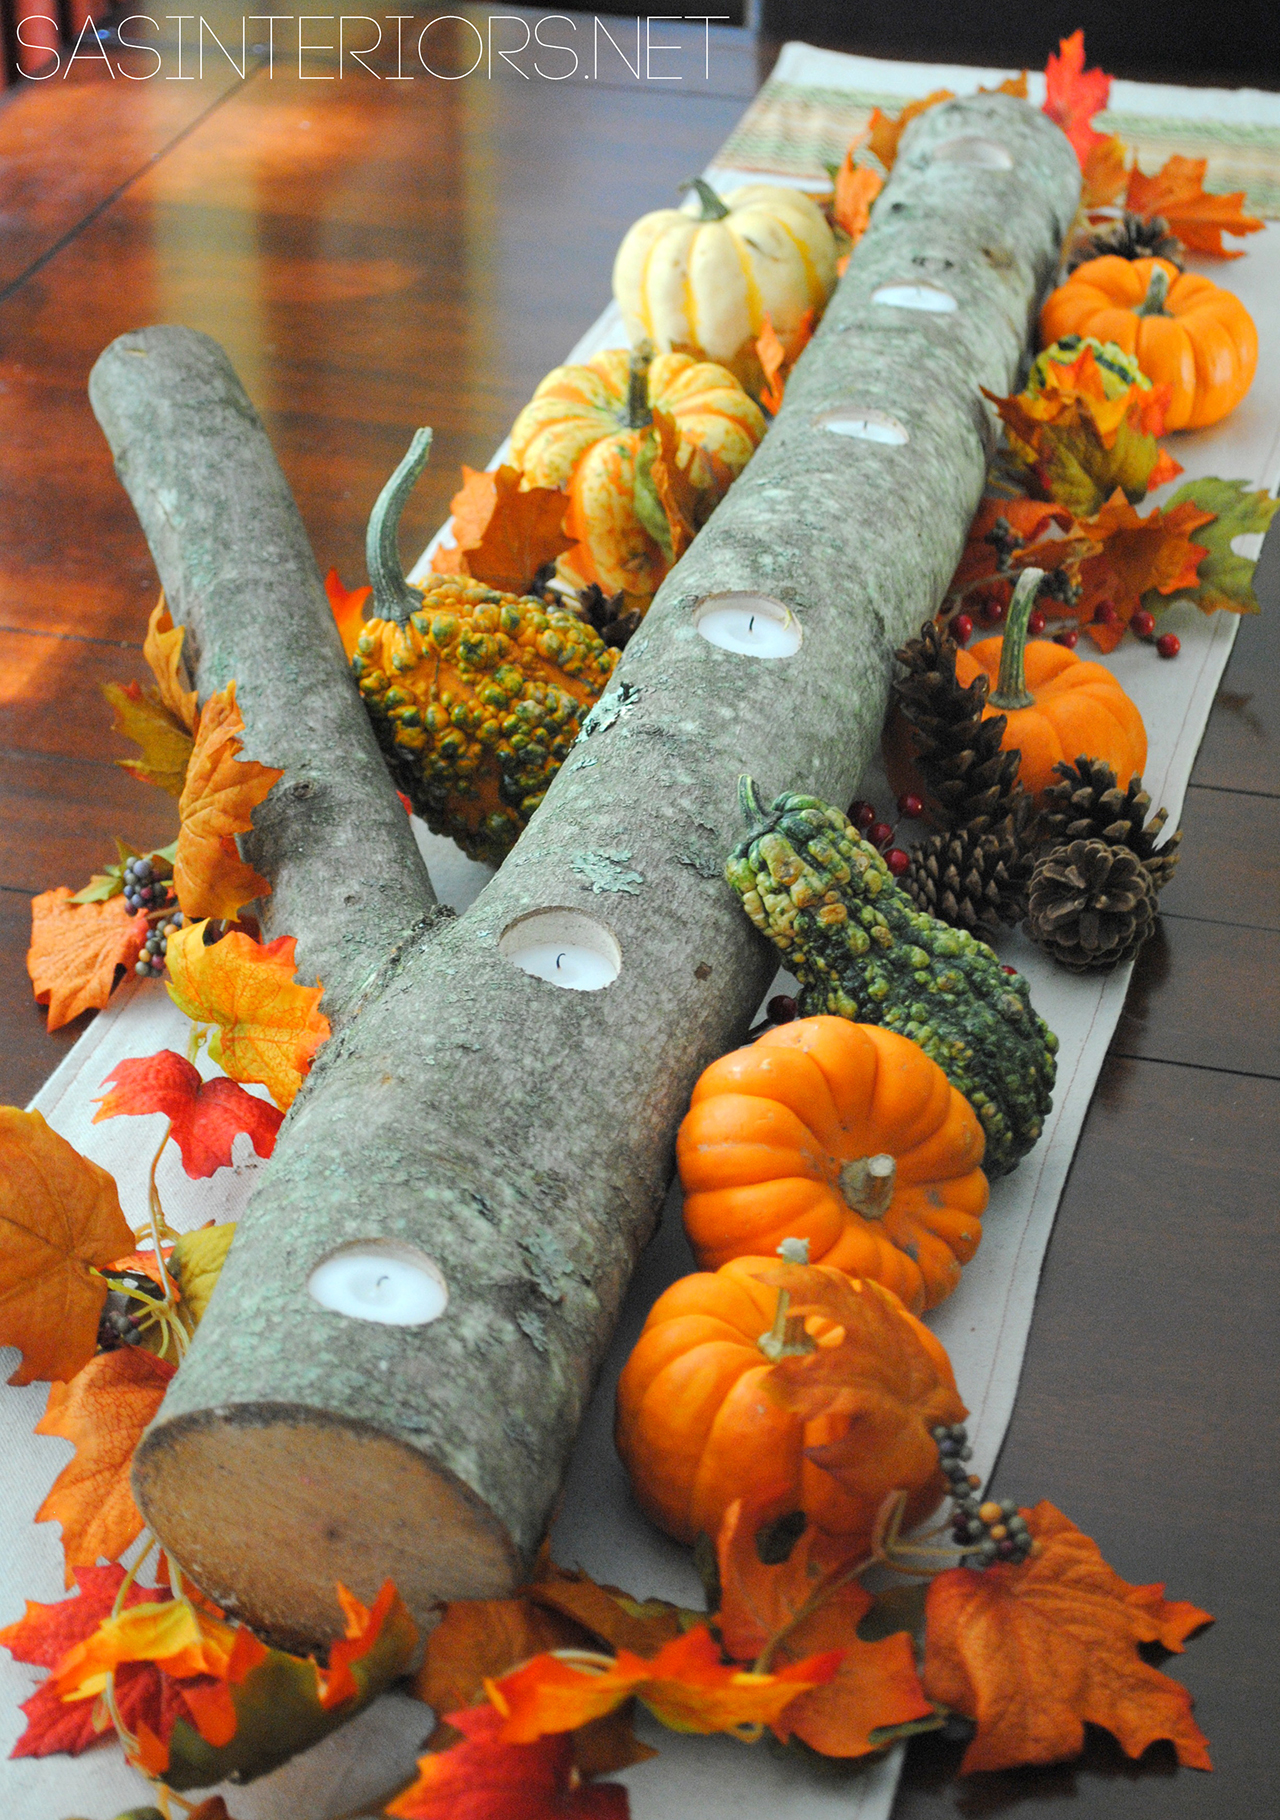 Tree Limb Votive Holder with Festive Gourds